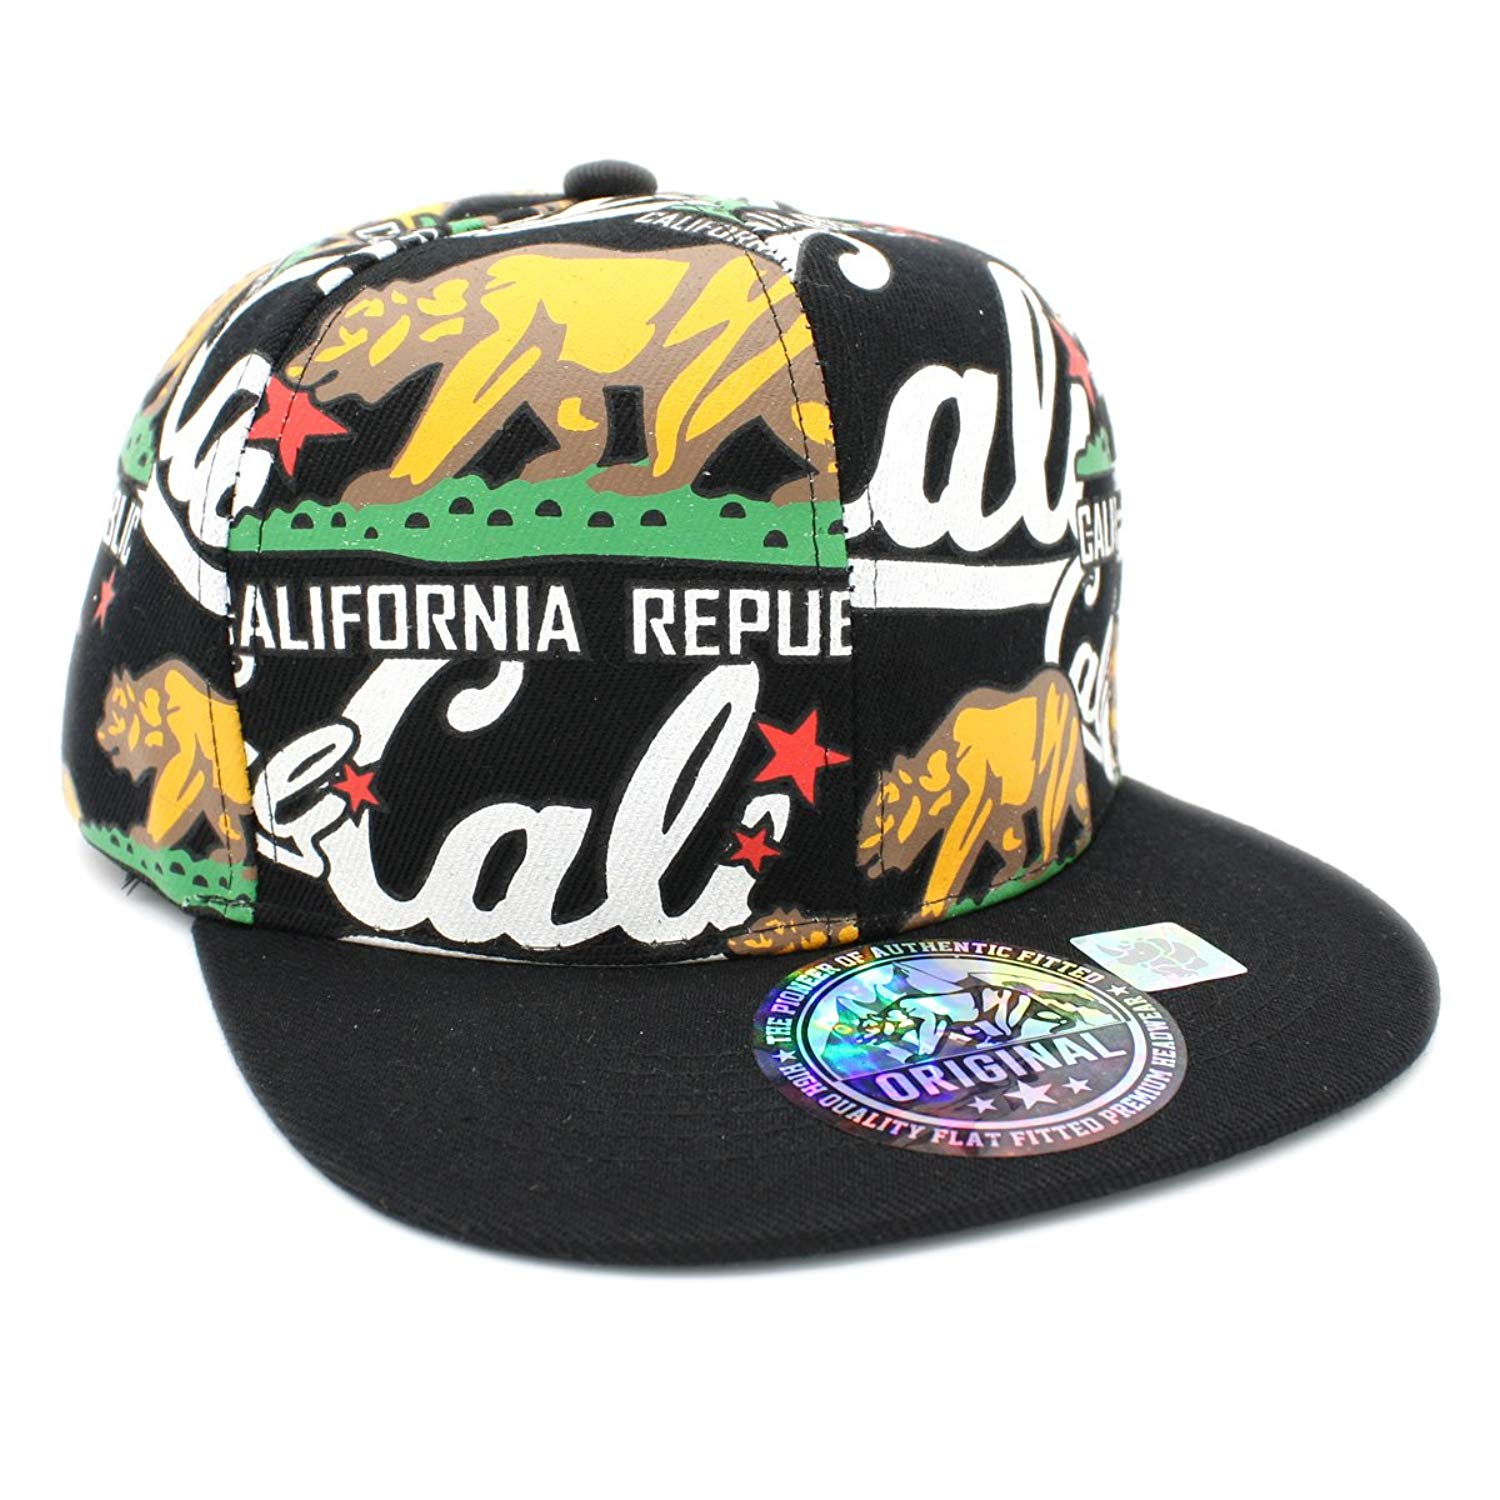 88ebafb60b4 Get Quotations · Color Print CALIFORNIA REPUBLIC Flat Bill Snapback Cap